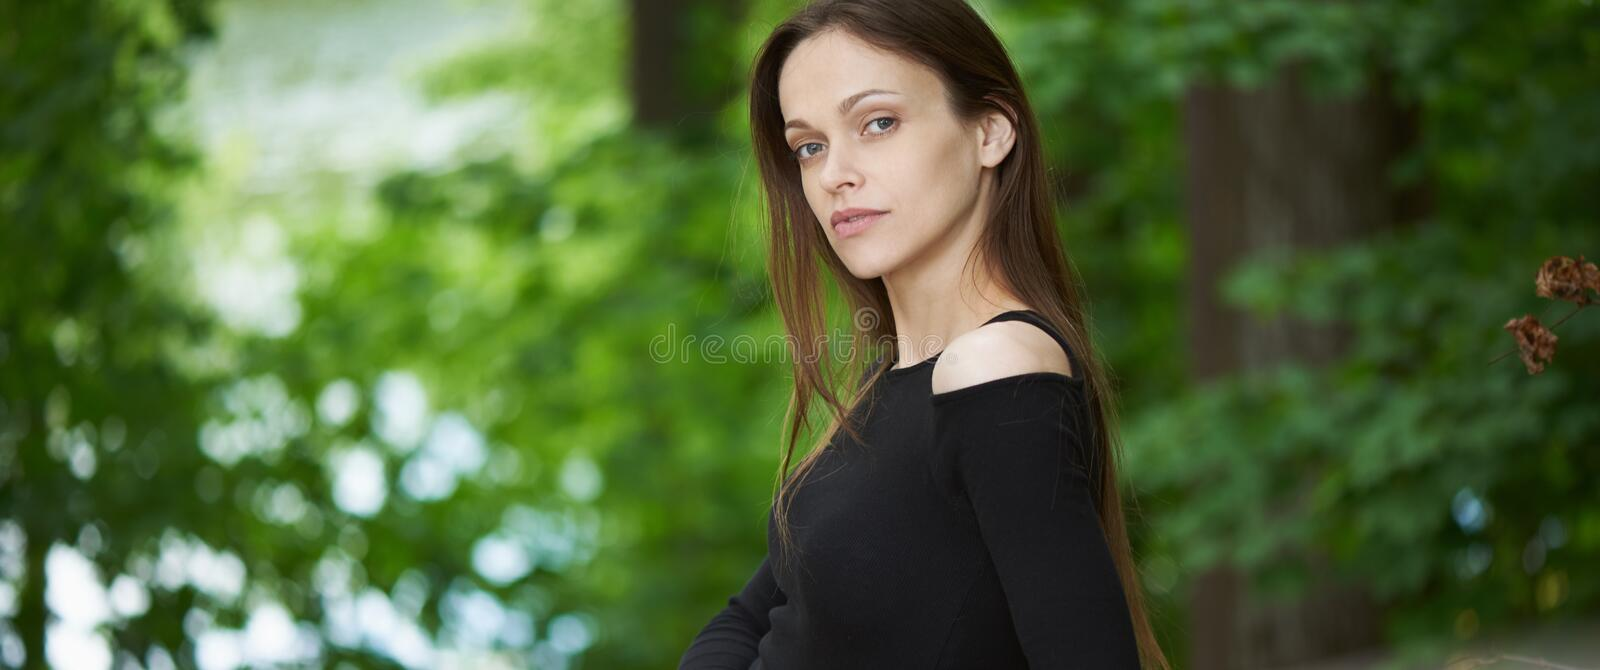 pretty woman in the park. Outdoors stock image